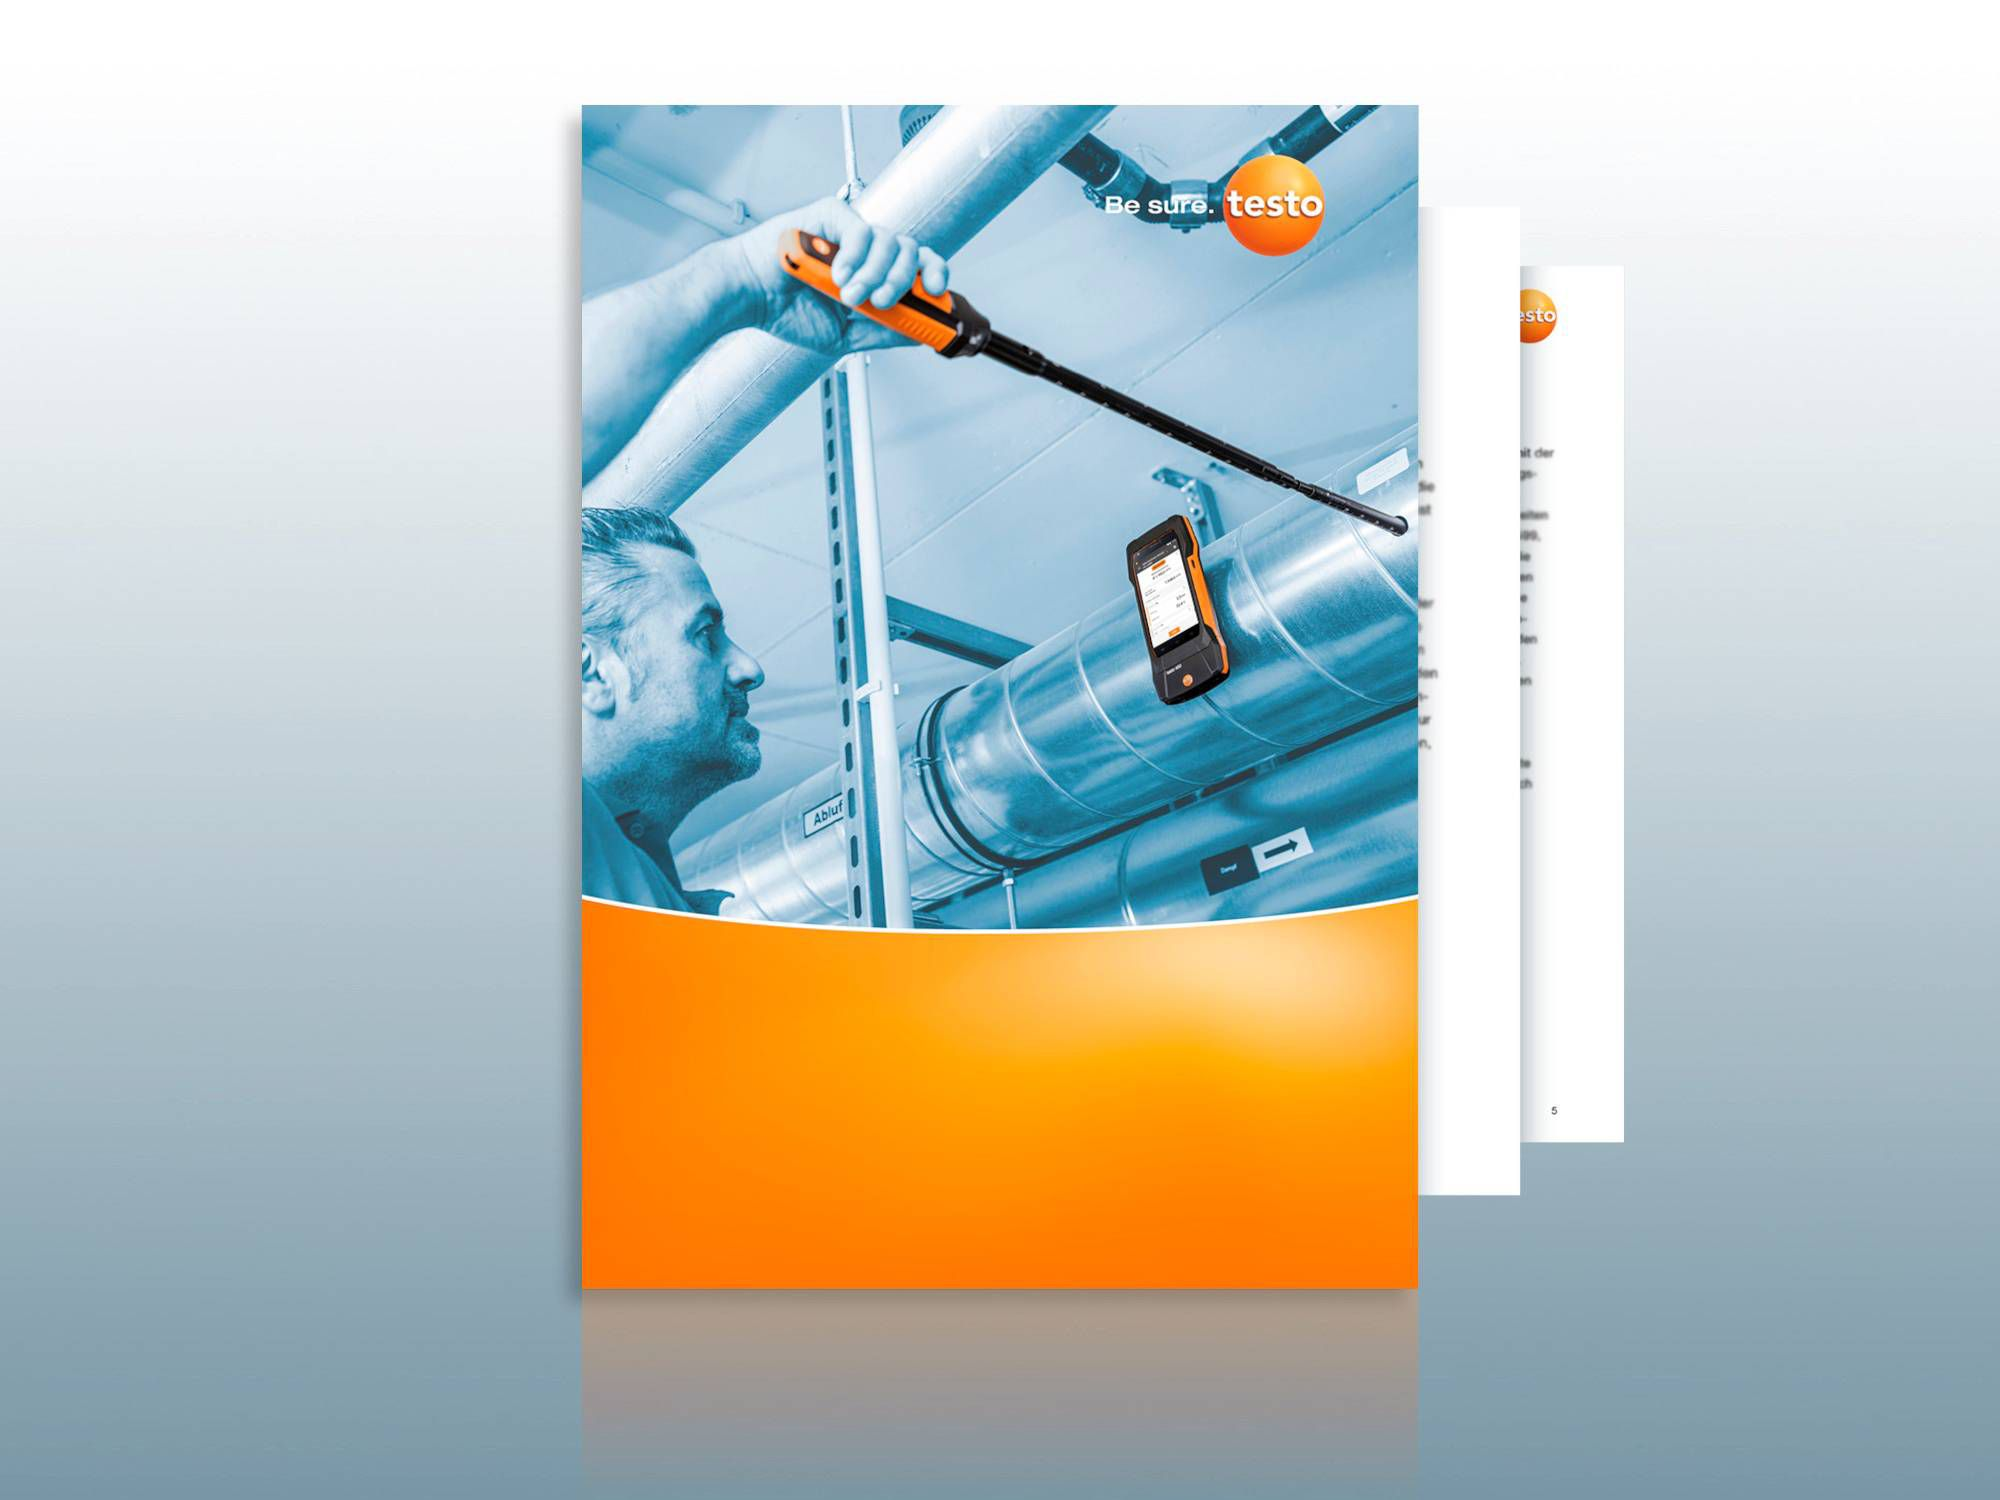 Practical guide: Air flow measurements in ducts according to DIN EN 12599